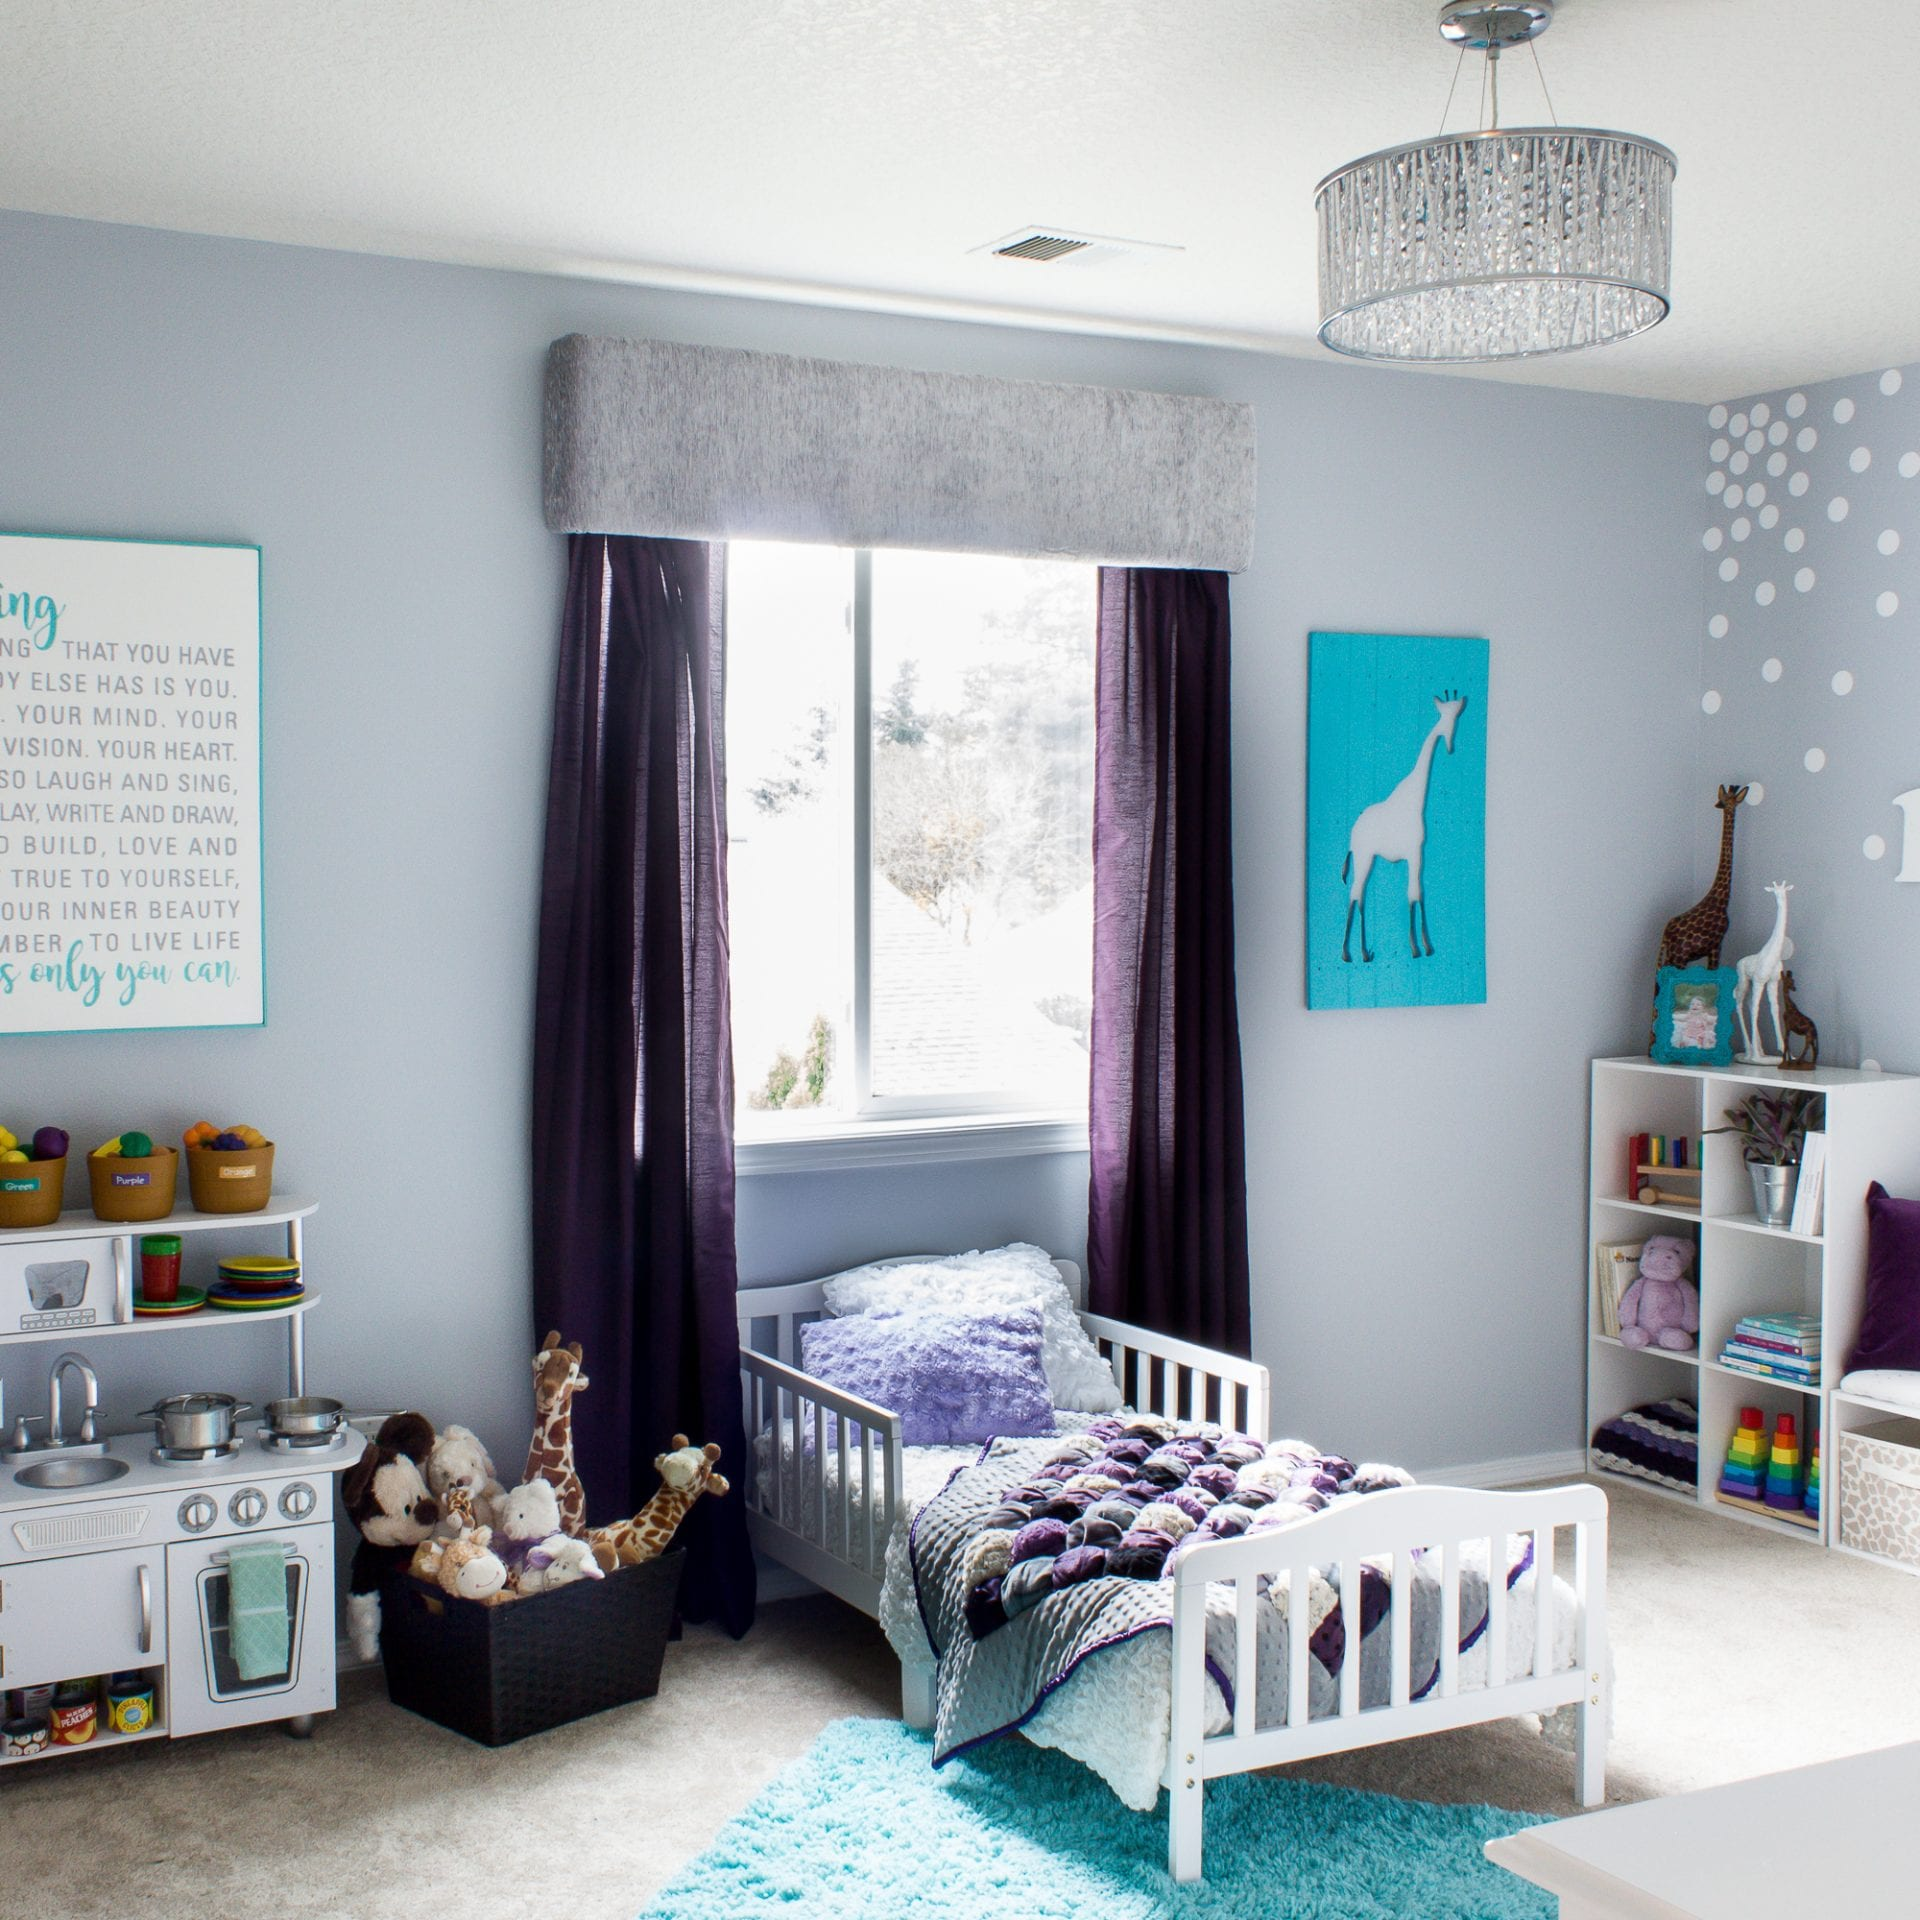 A Cute Toddler Girl Bedroom with Many